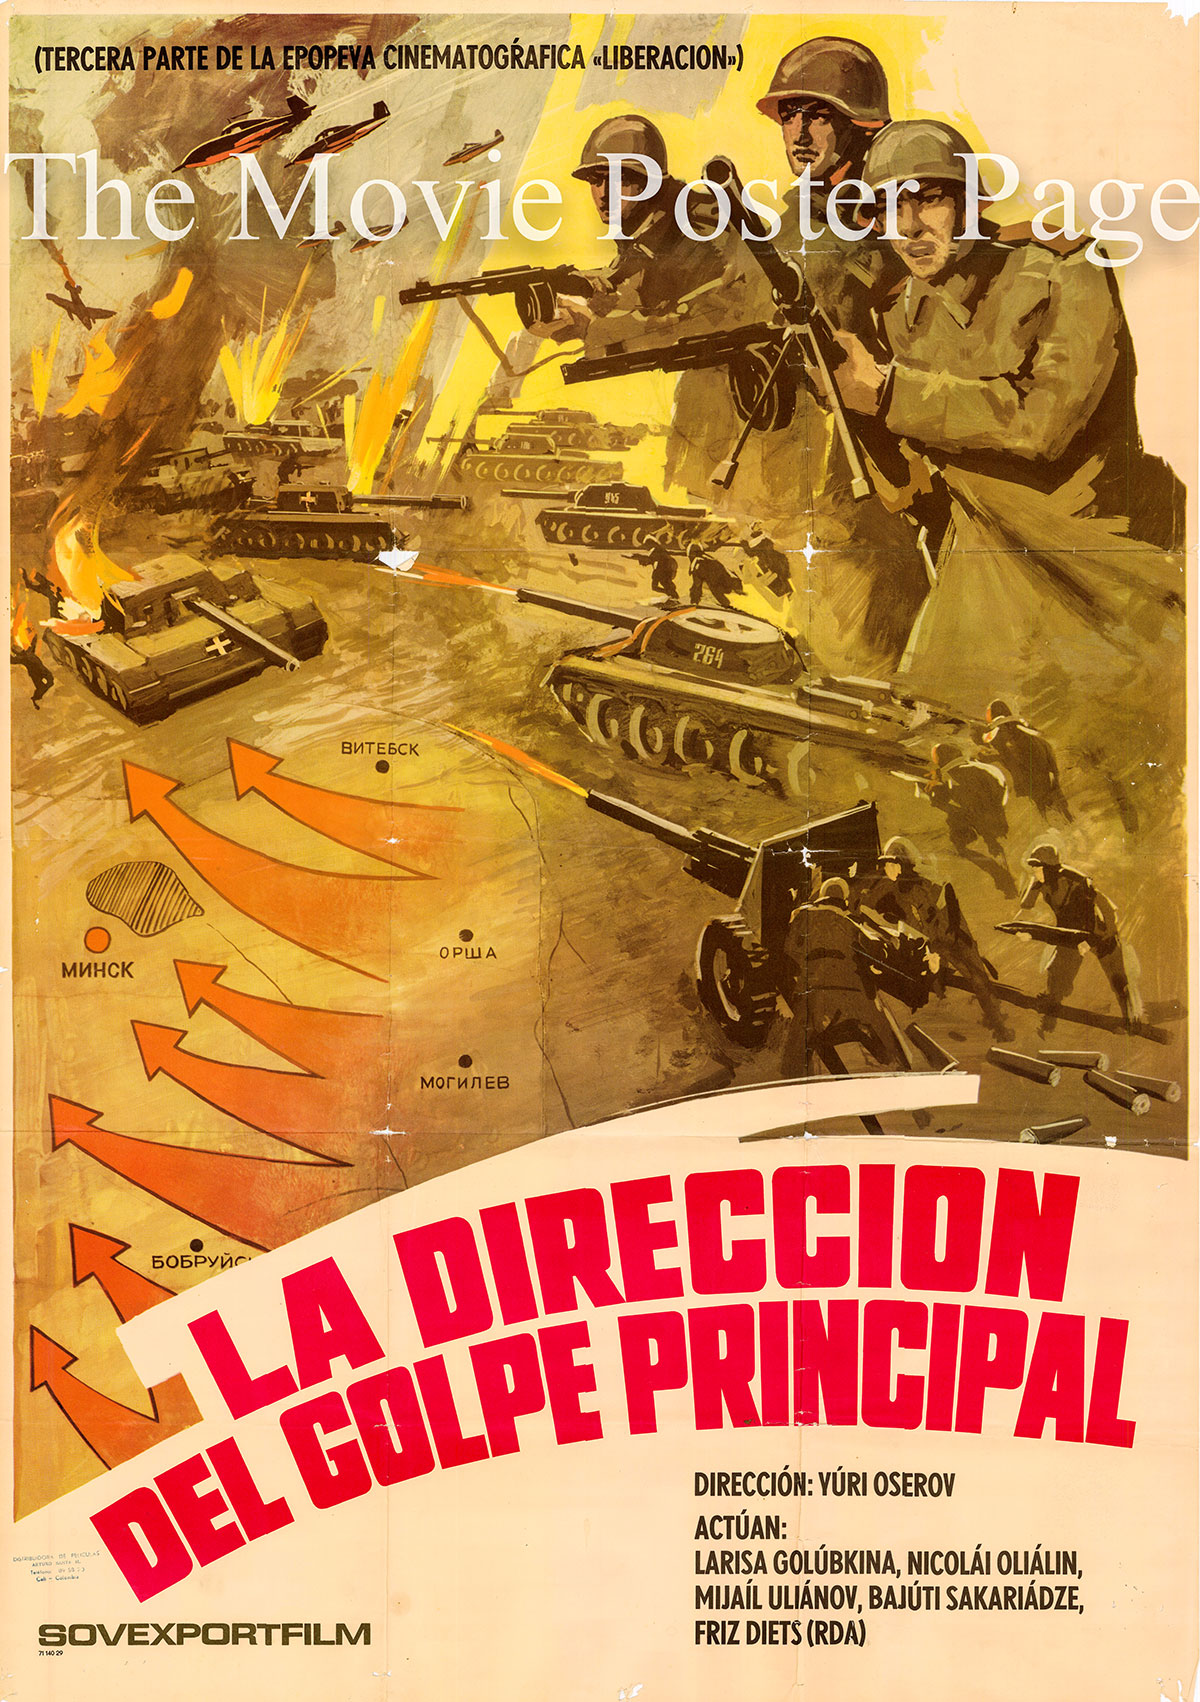 Pictured is a Spanish Siviet Export film poster for the 1971 Yuri Ozerov film the Direction of the Main Blow.